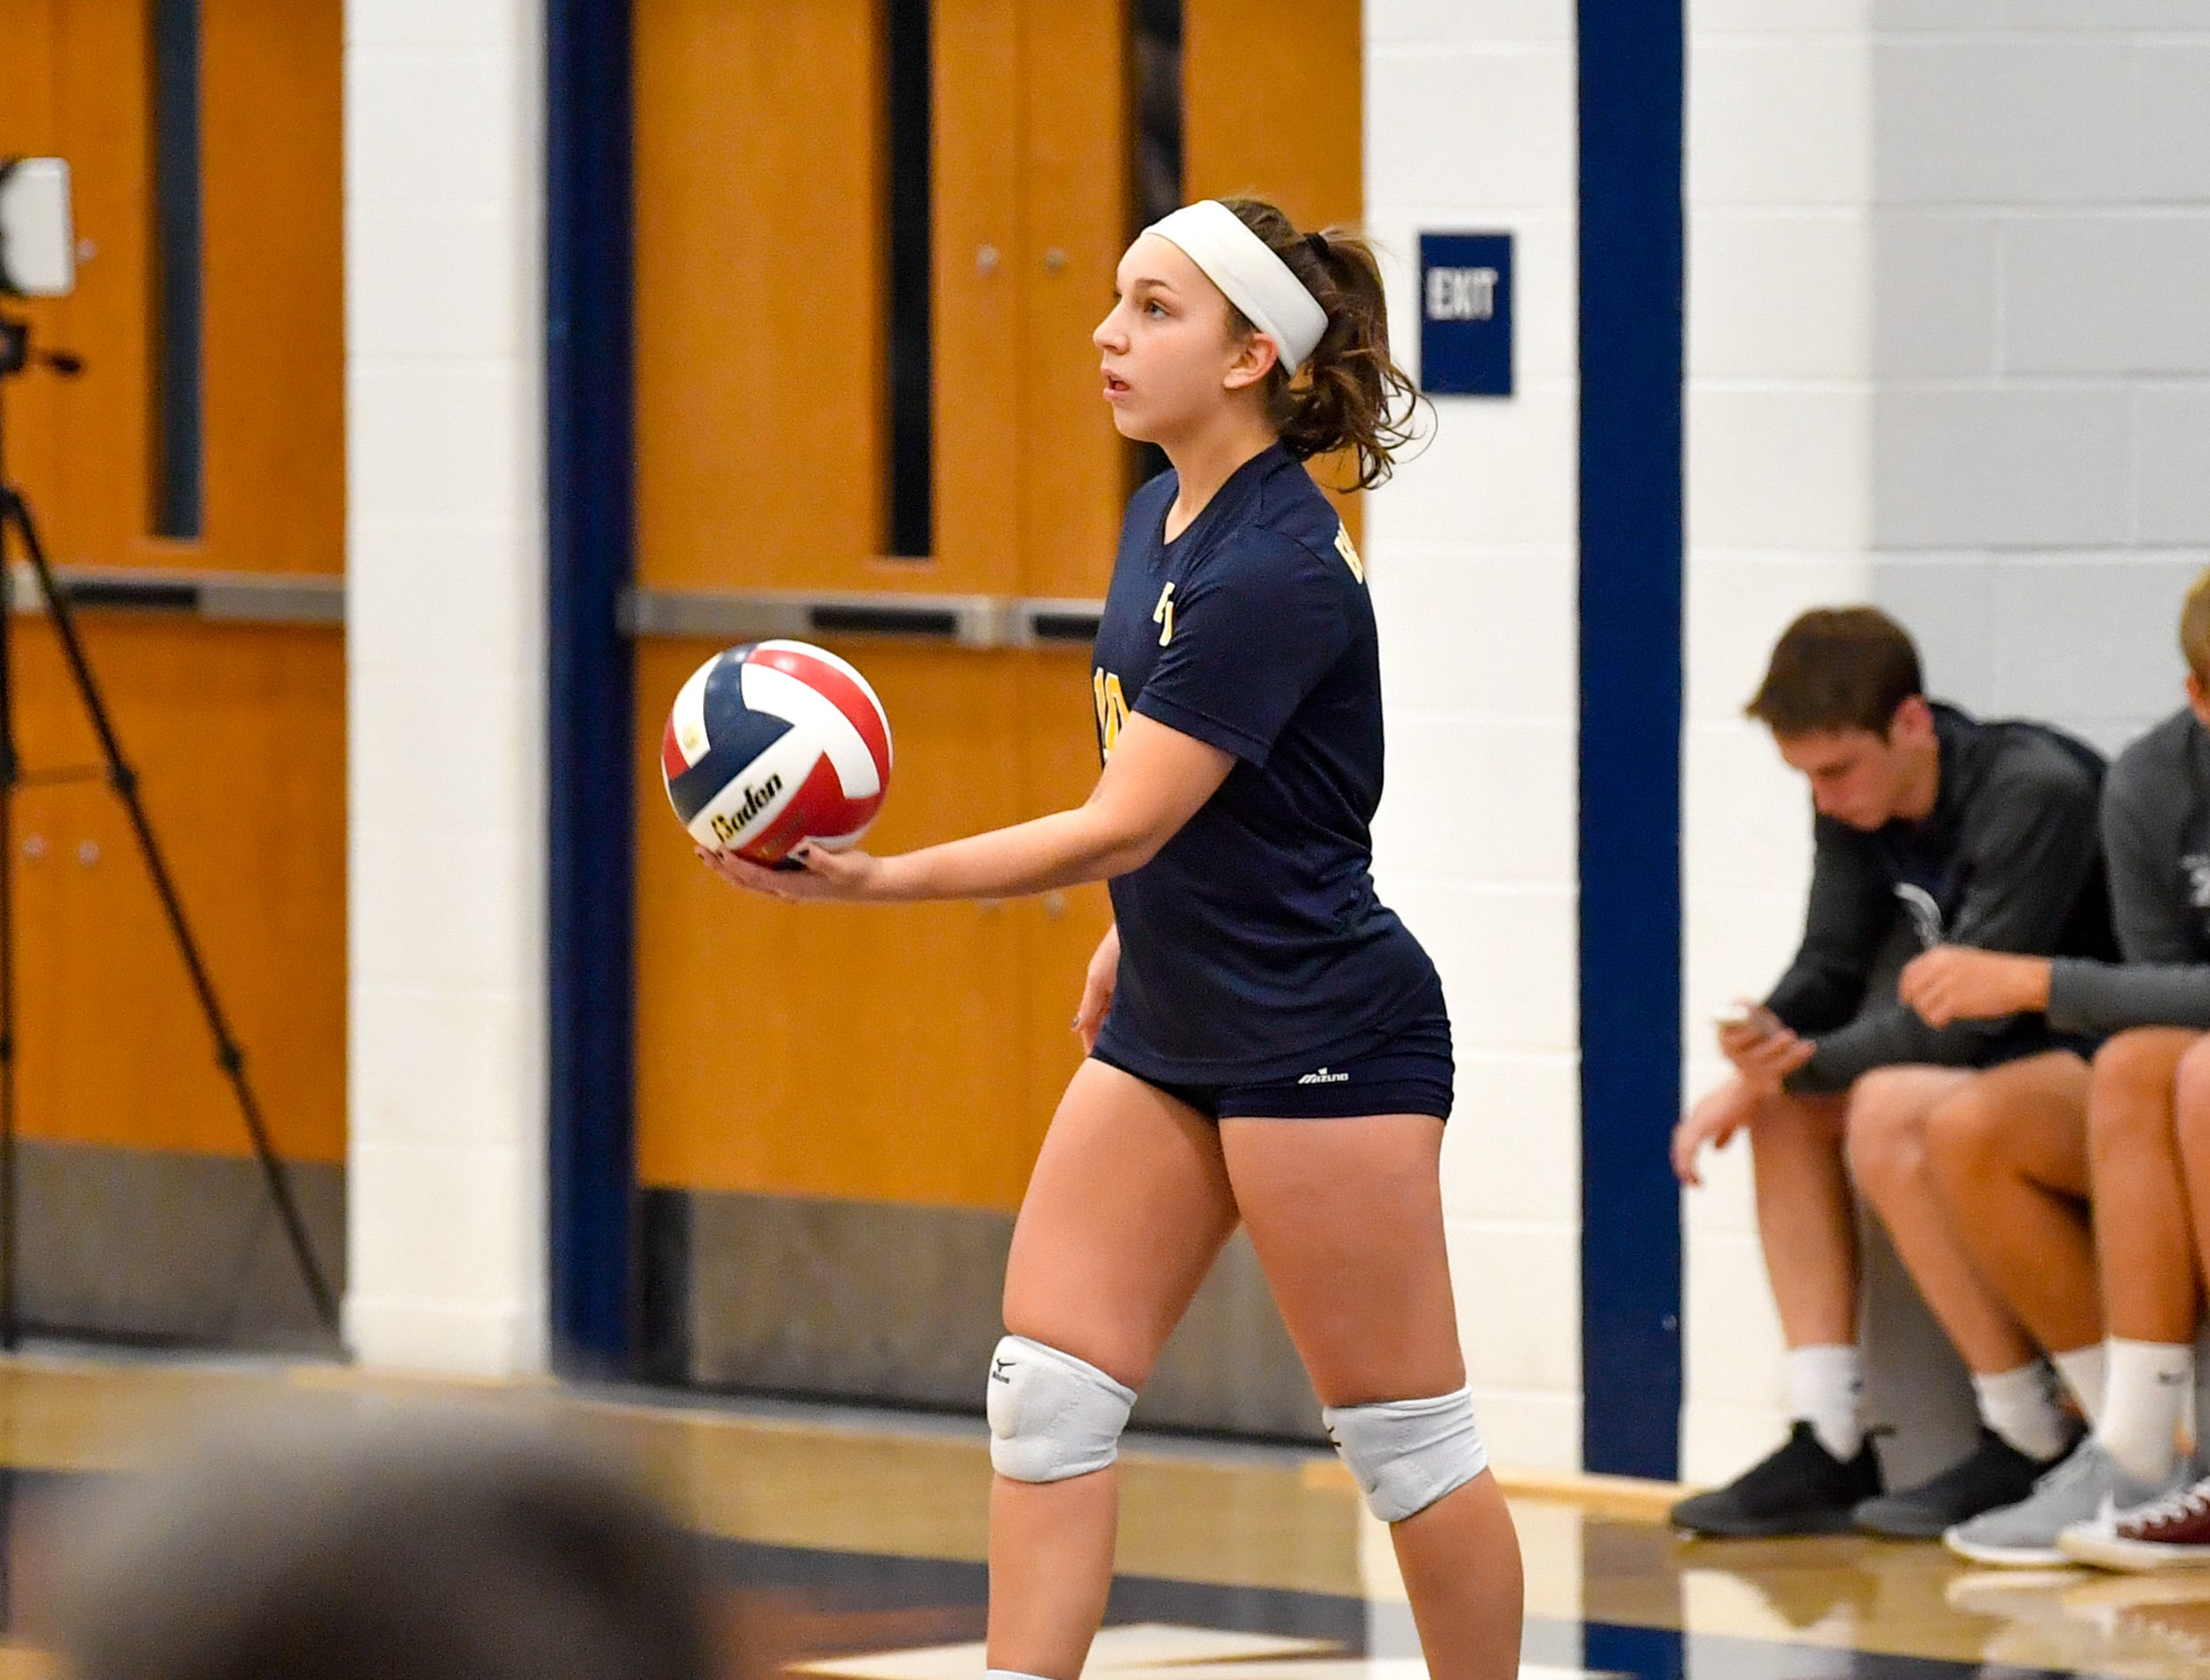 Katie Lehman (10) goes back for the serve during the District 3 Class 3A girls' volleyball quarterfinals between West York and Eastern York at West York High School, October 30, 2018. The Bulldogs defeated the Golden Knights 3-0.